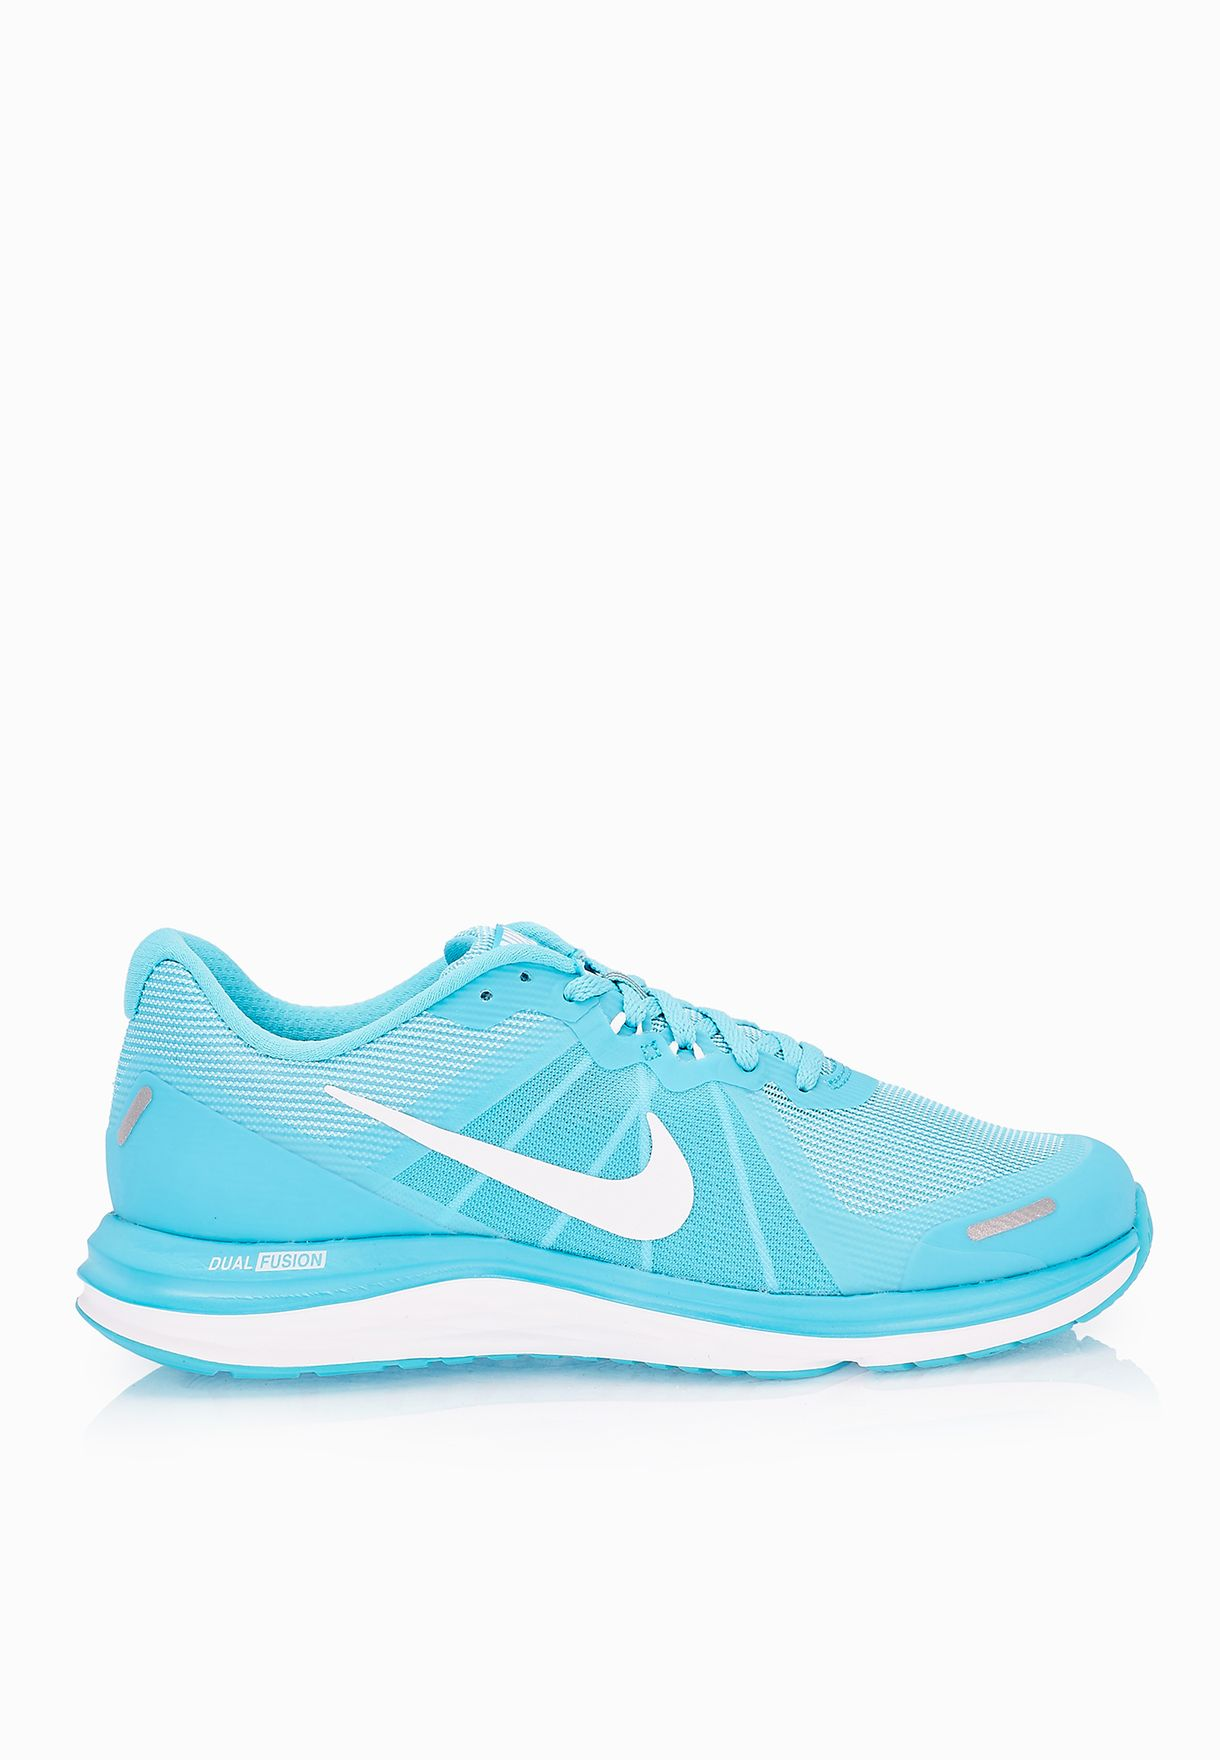 huge selection of 734bc 71f80 Shop Nike blue Dual Fusion X 2 819318-400 for Women in UAE ...